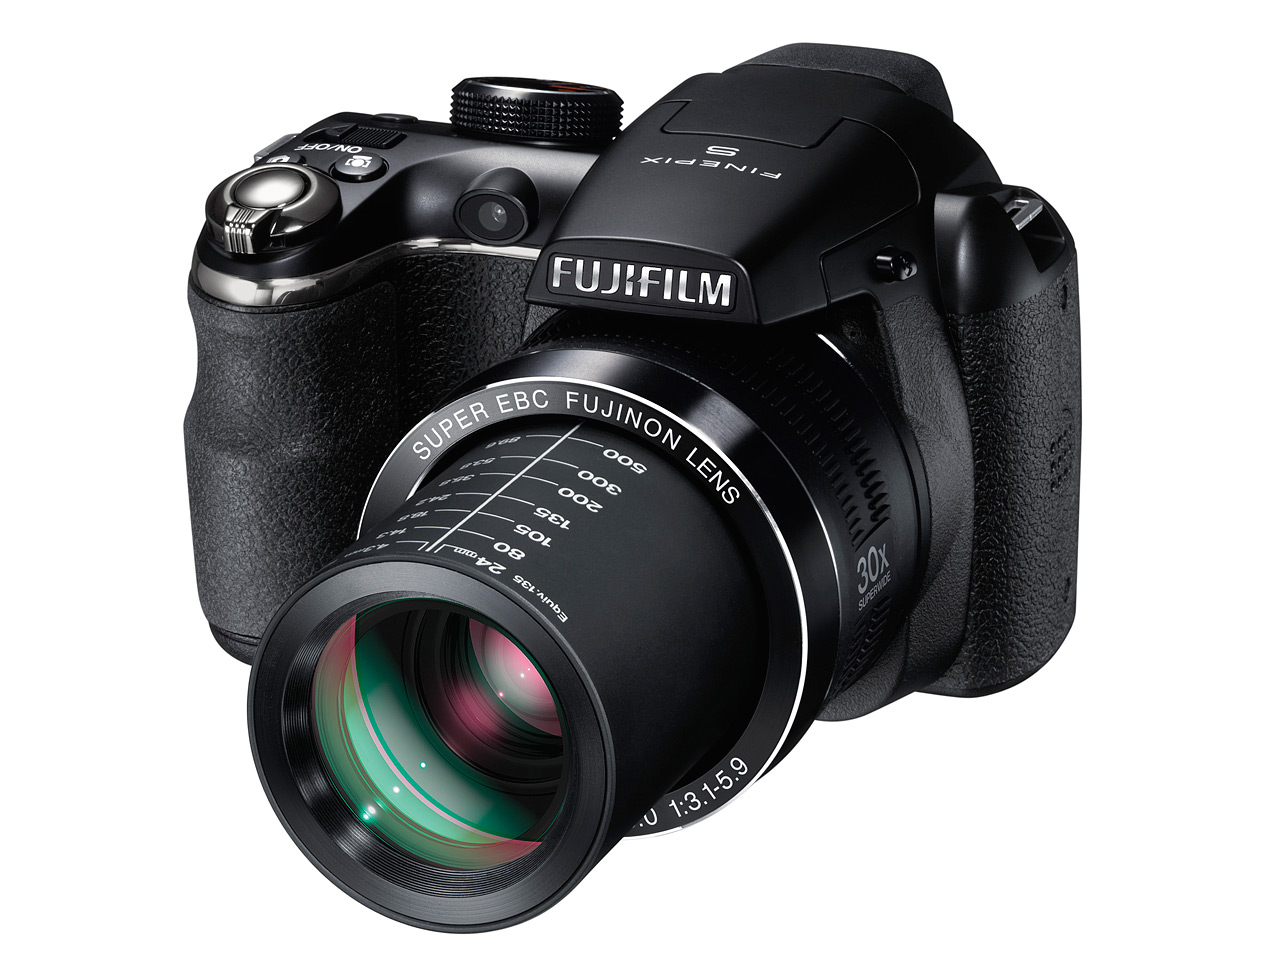 fujifilm releases finepix s4500 and s4200 entry level superzooms rh dpreview com Operators Manual fuji finepix s4200 owners manual